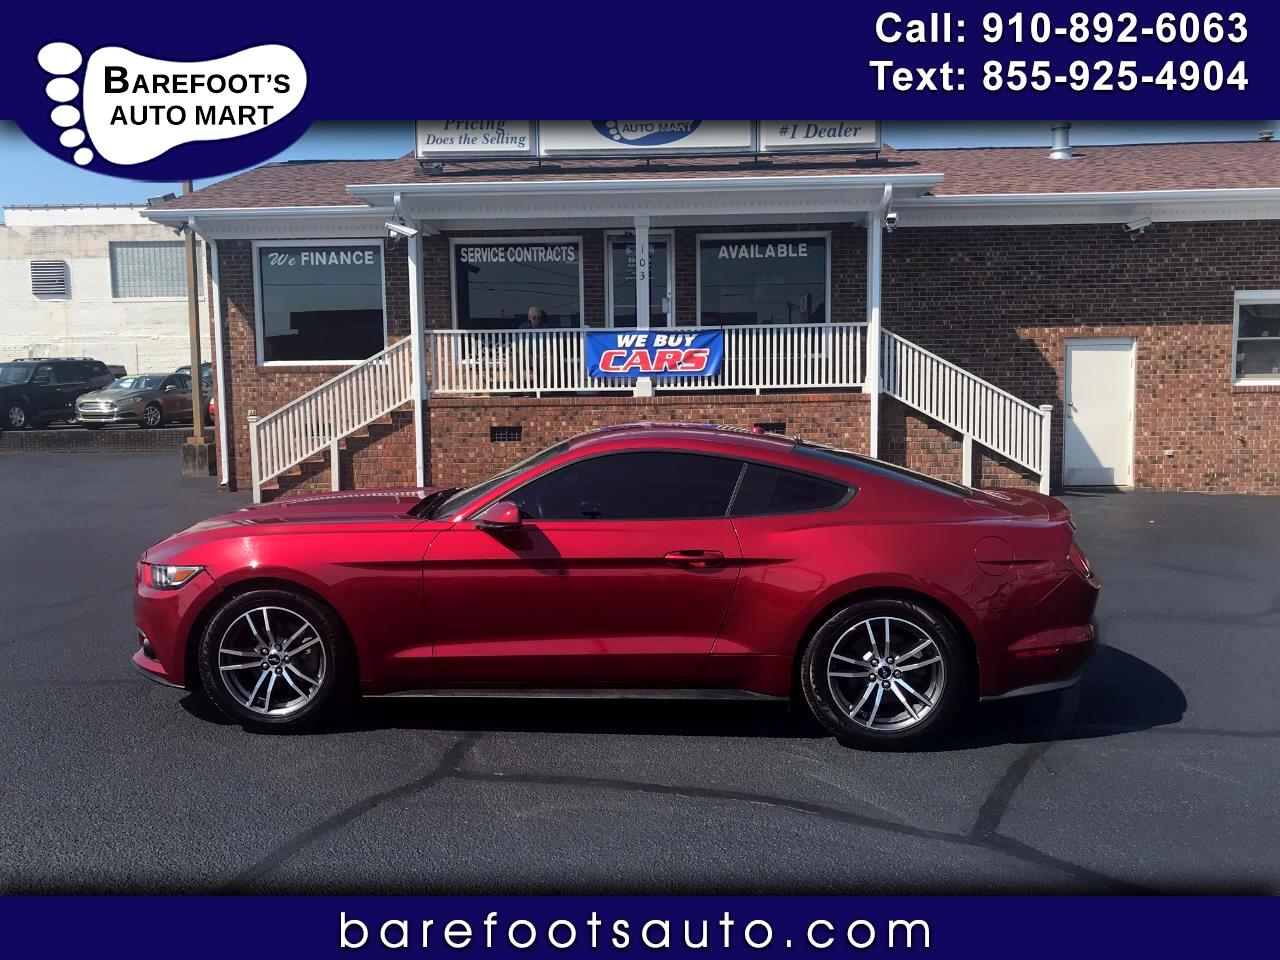 Ford Mustang EcoBoost Premium Fastback 2017